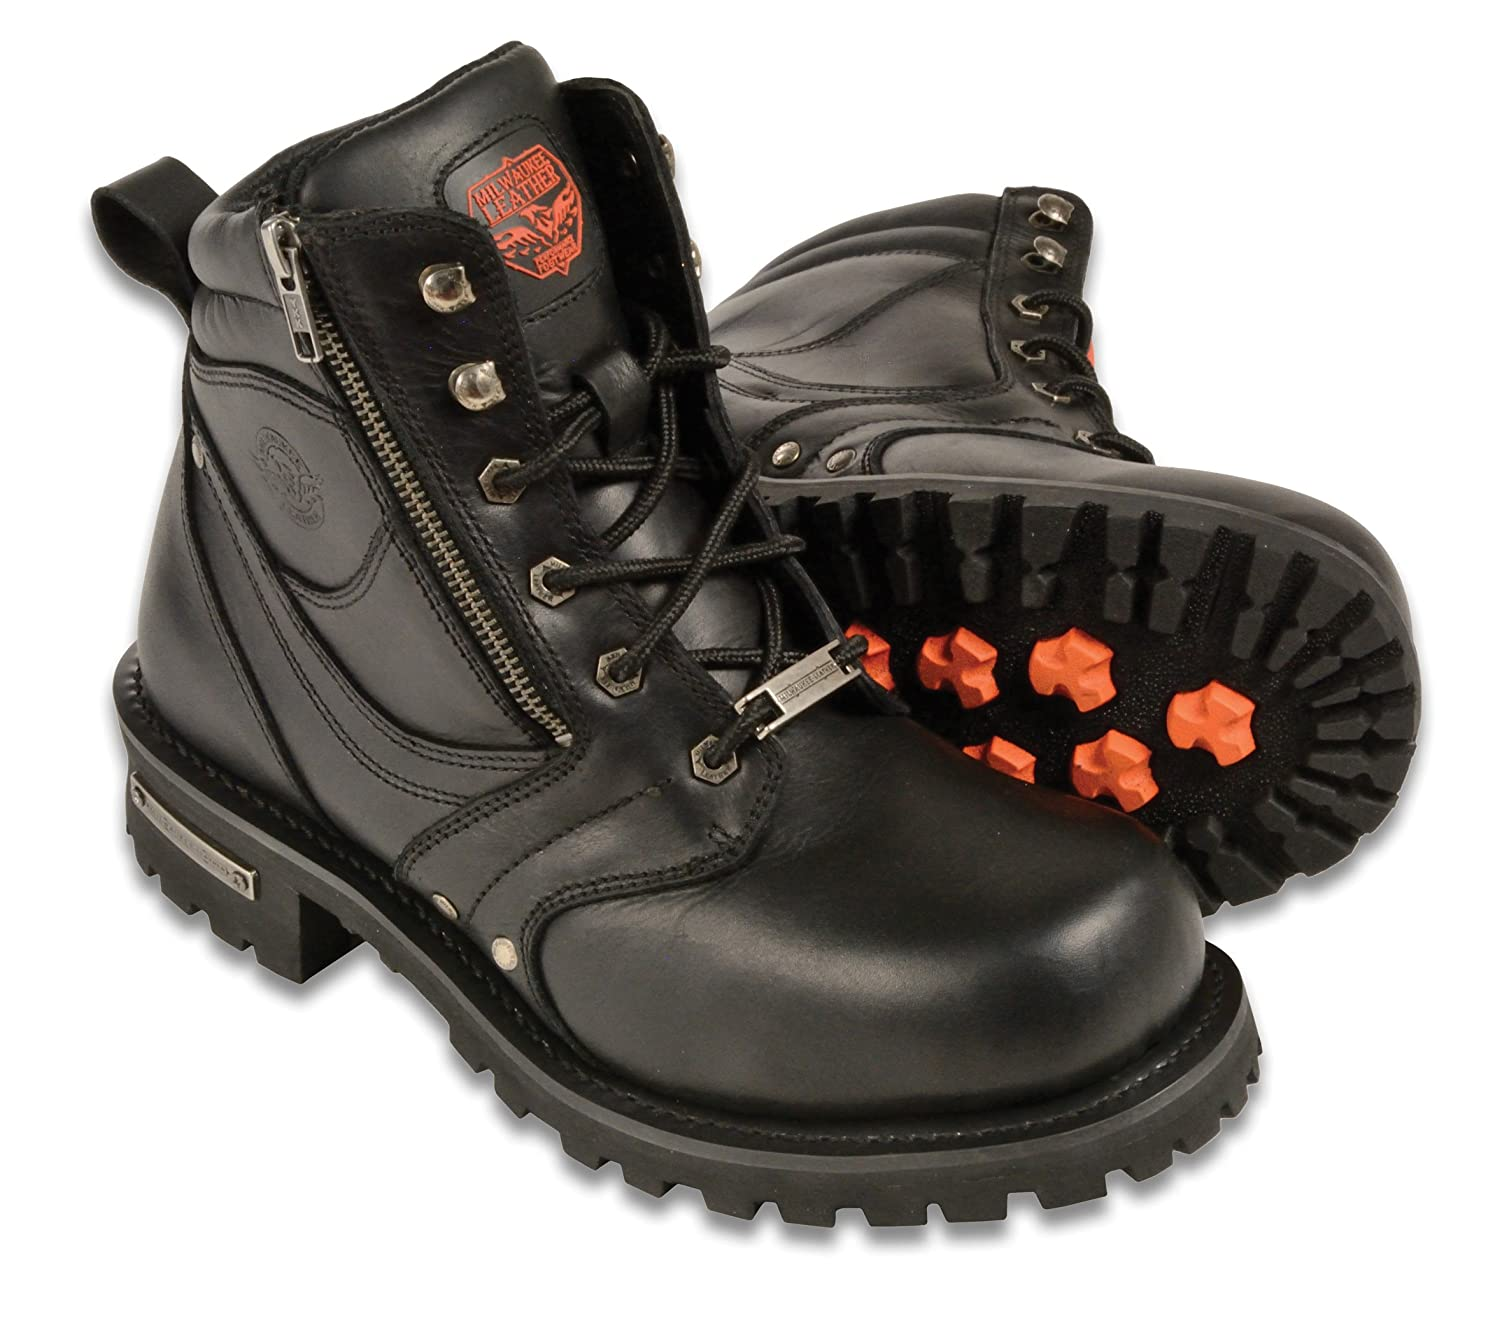 Milwaukee Men's Wide Boots with Zip and Laces (Black, Size 11) Shaf International Inc. MBM9050W-BLK-11W